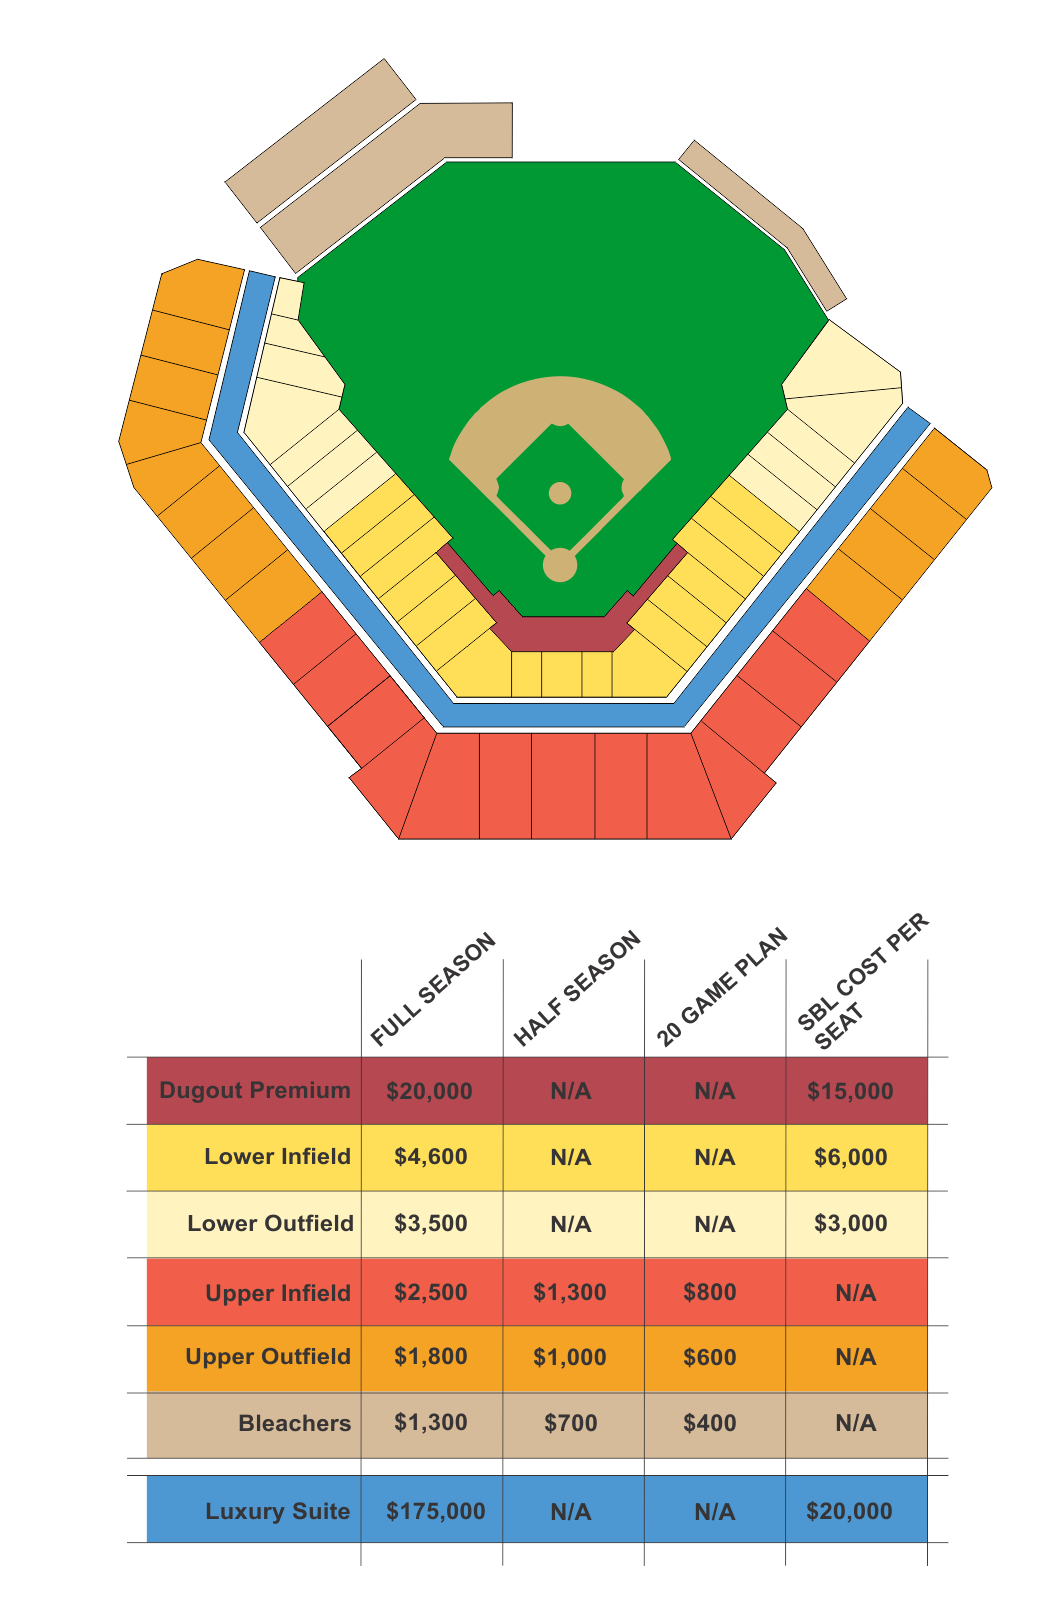 This seating chart is for illustrative and reference purposes only and does not represent any existing or planned stadium.       SBLs (Stadium Builders License)  are a one-time, per seat fee that give you the rights to specific seats. These rights are resellable and valid as long as the season tickets continue to be purchased at the venue. These are necessary because this stadium will be privately funded.